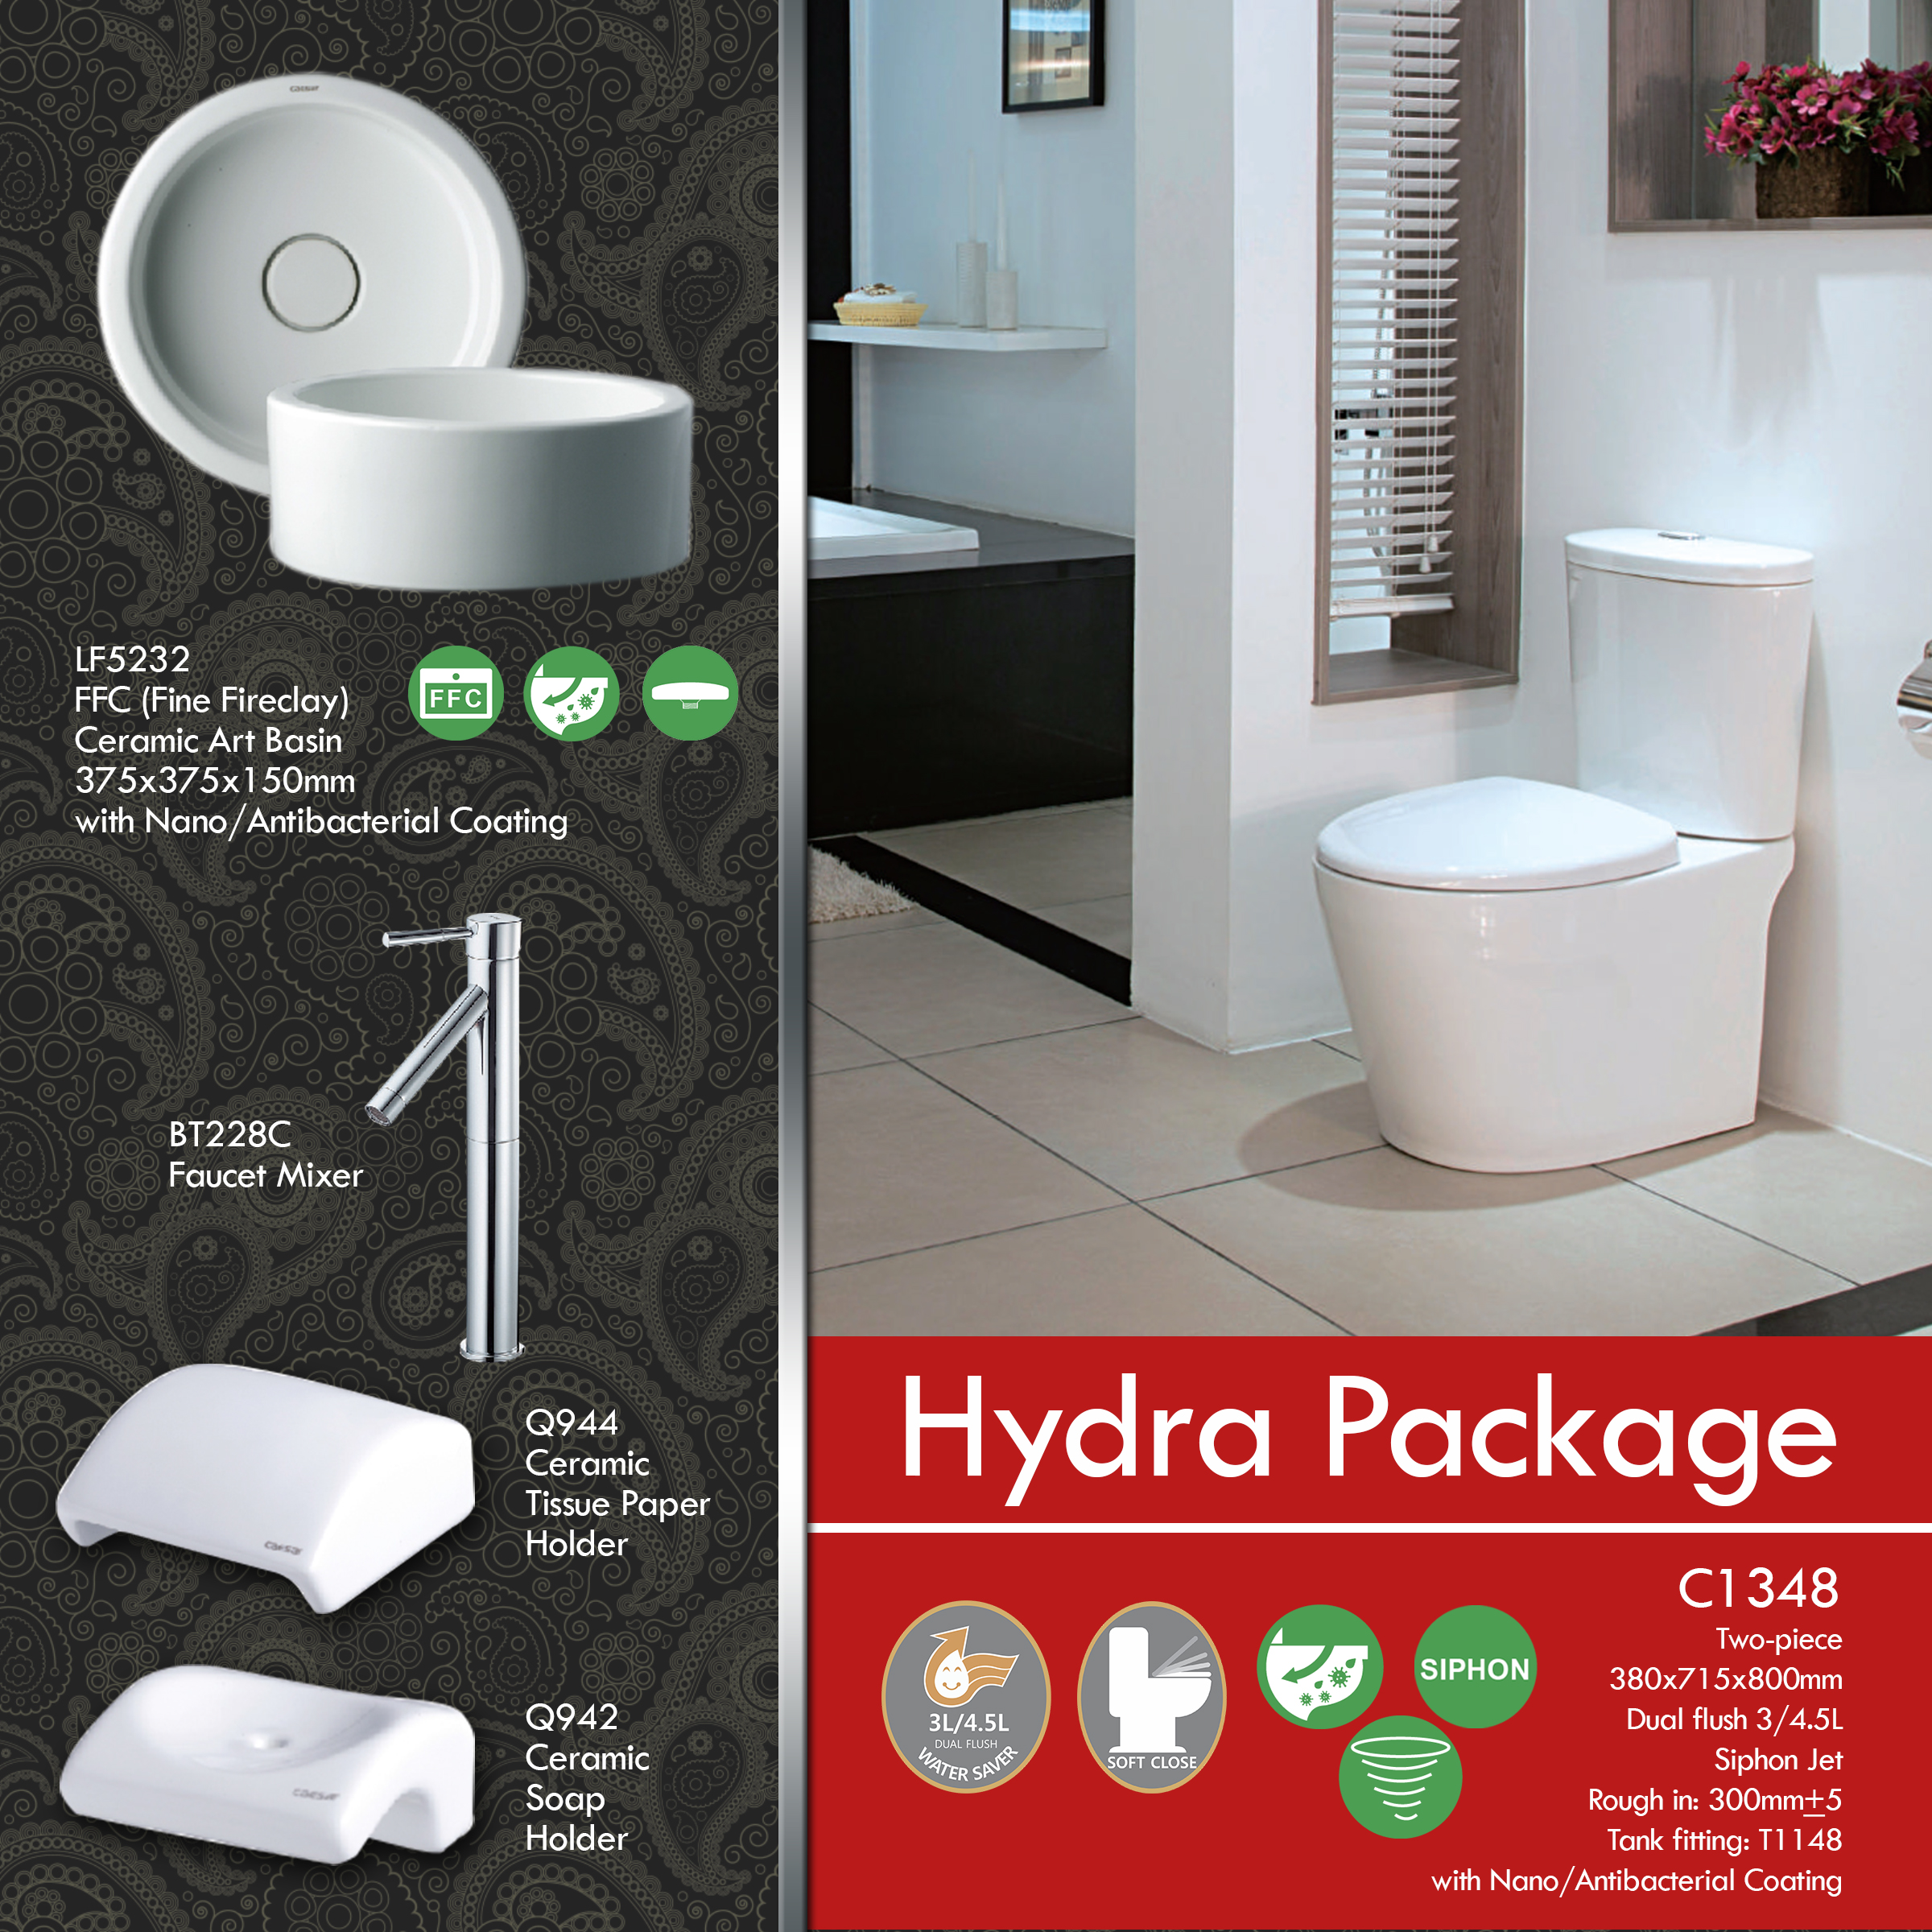 HYDRA PACKAGE